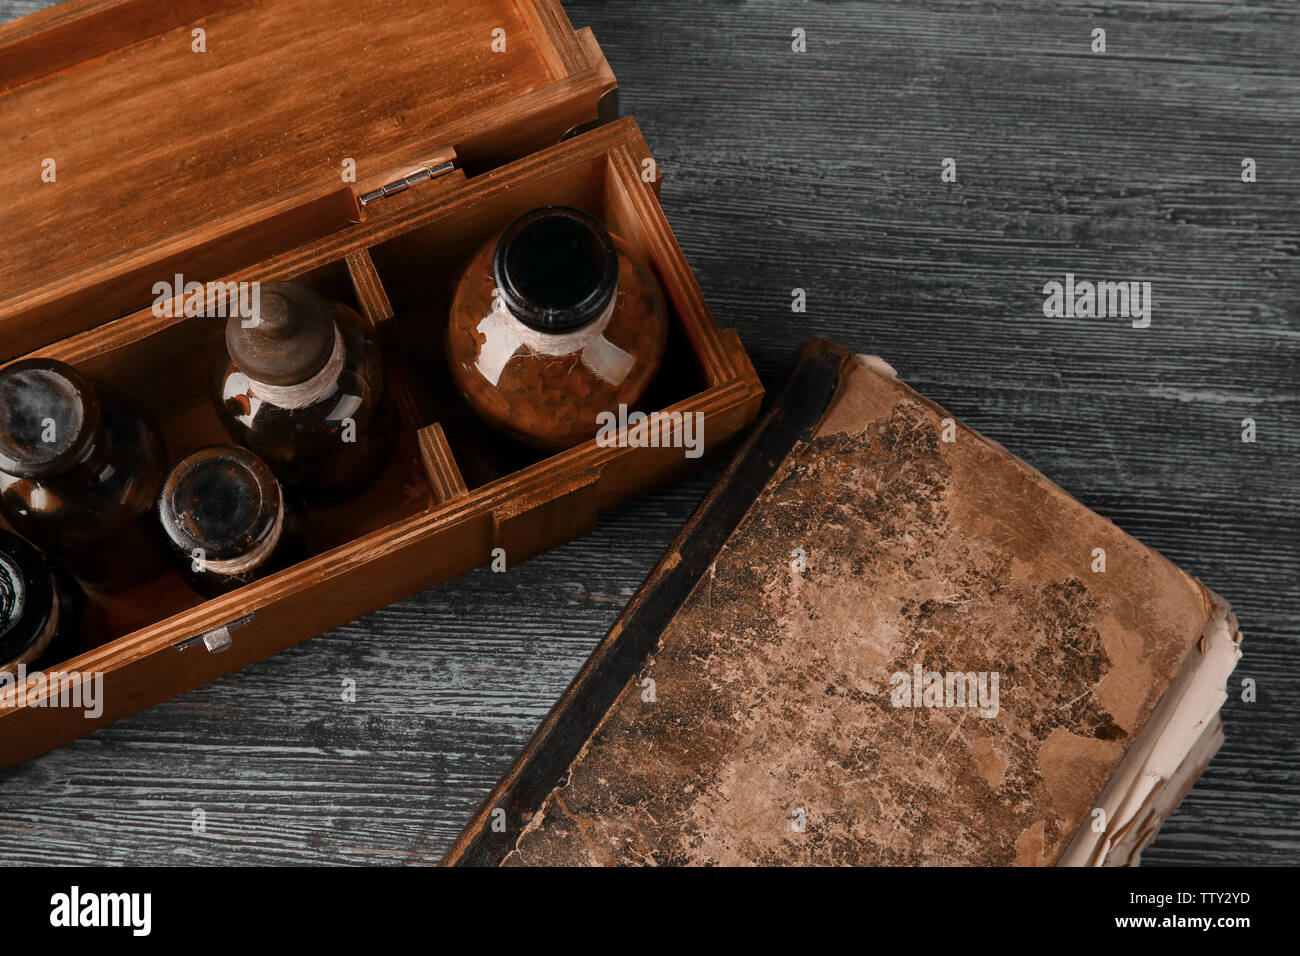 Vintage glass bottles in box with old book on wooden background, closeup - Stock Image